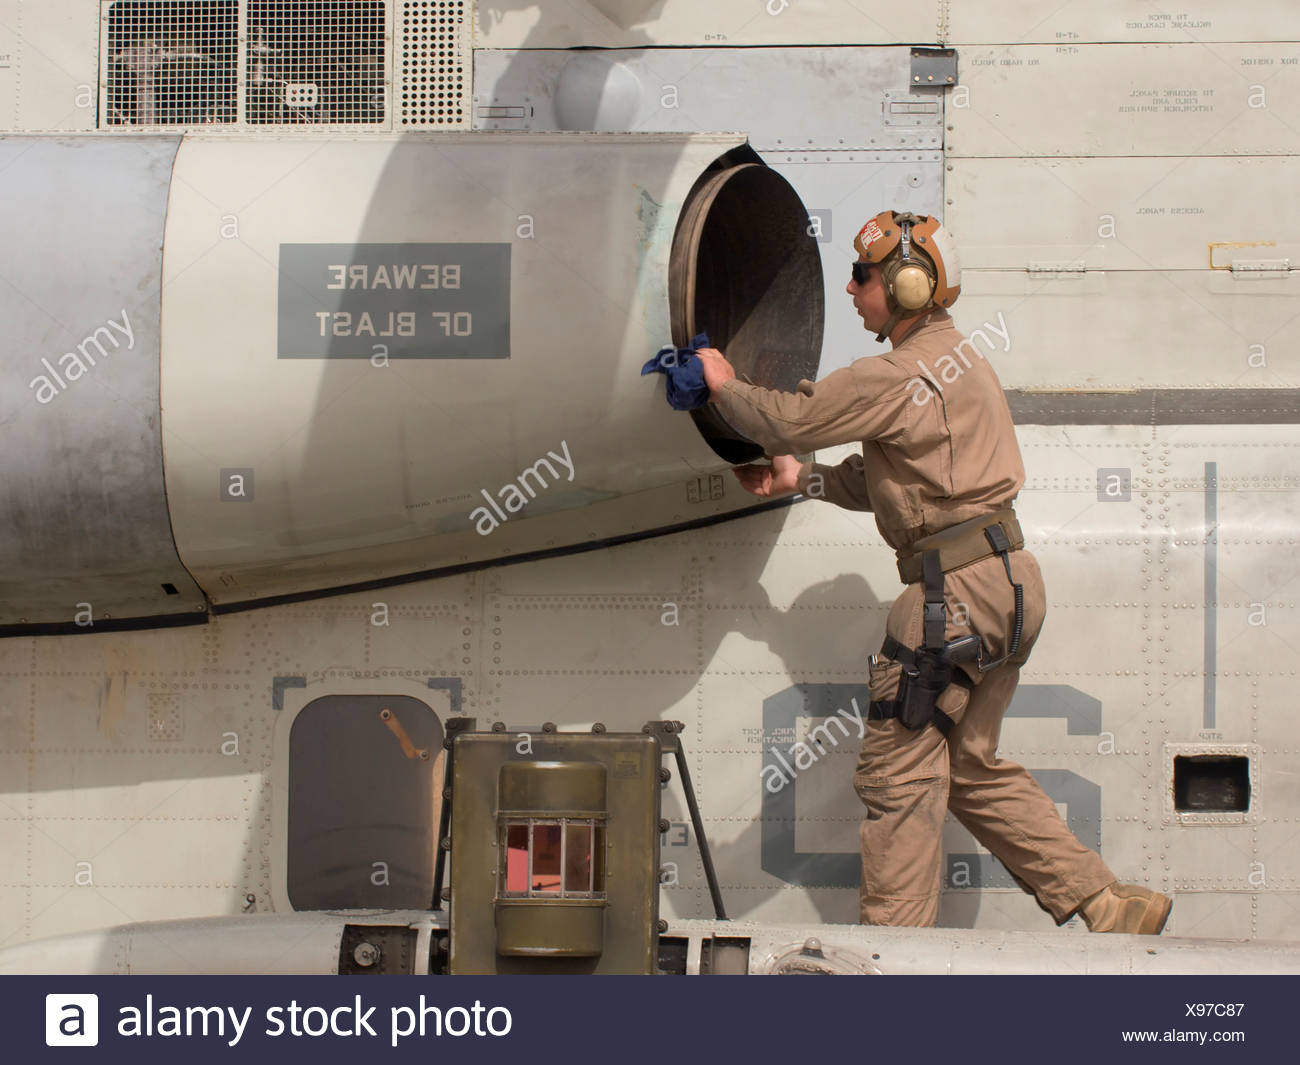 A US Marine Crew Chief Inspects Exhaust Jet Engine CH-53D